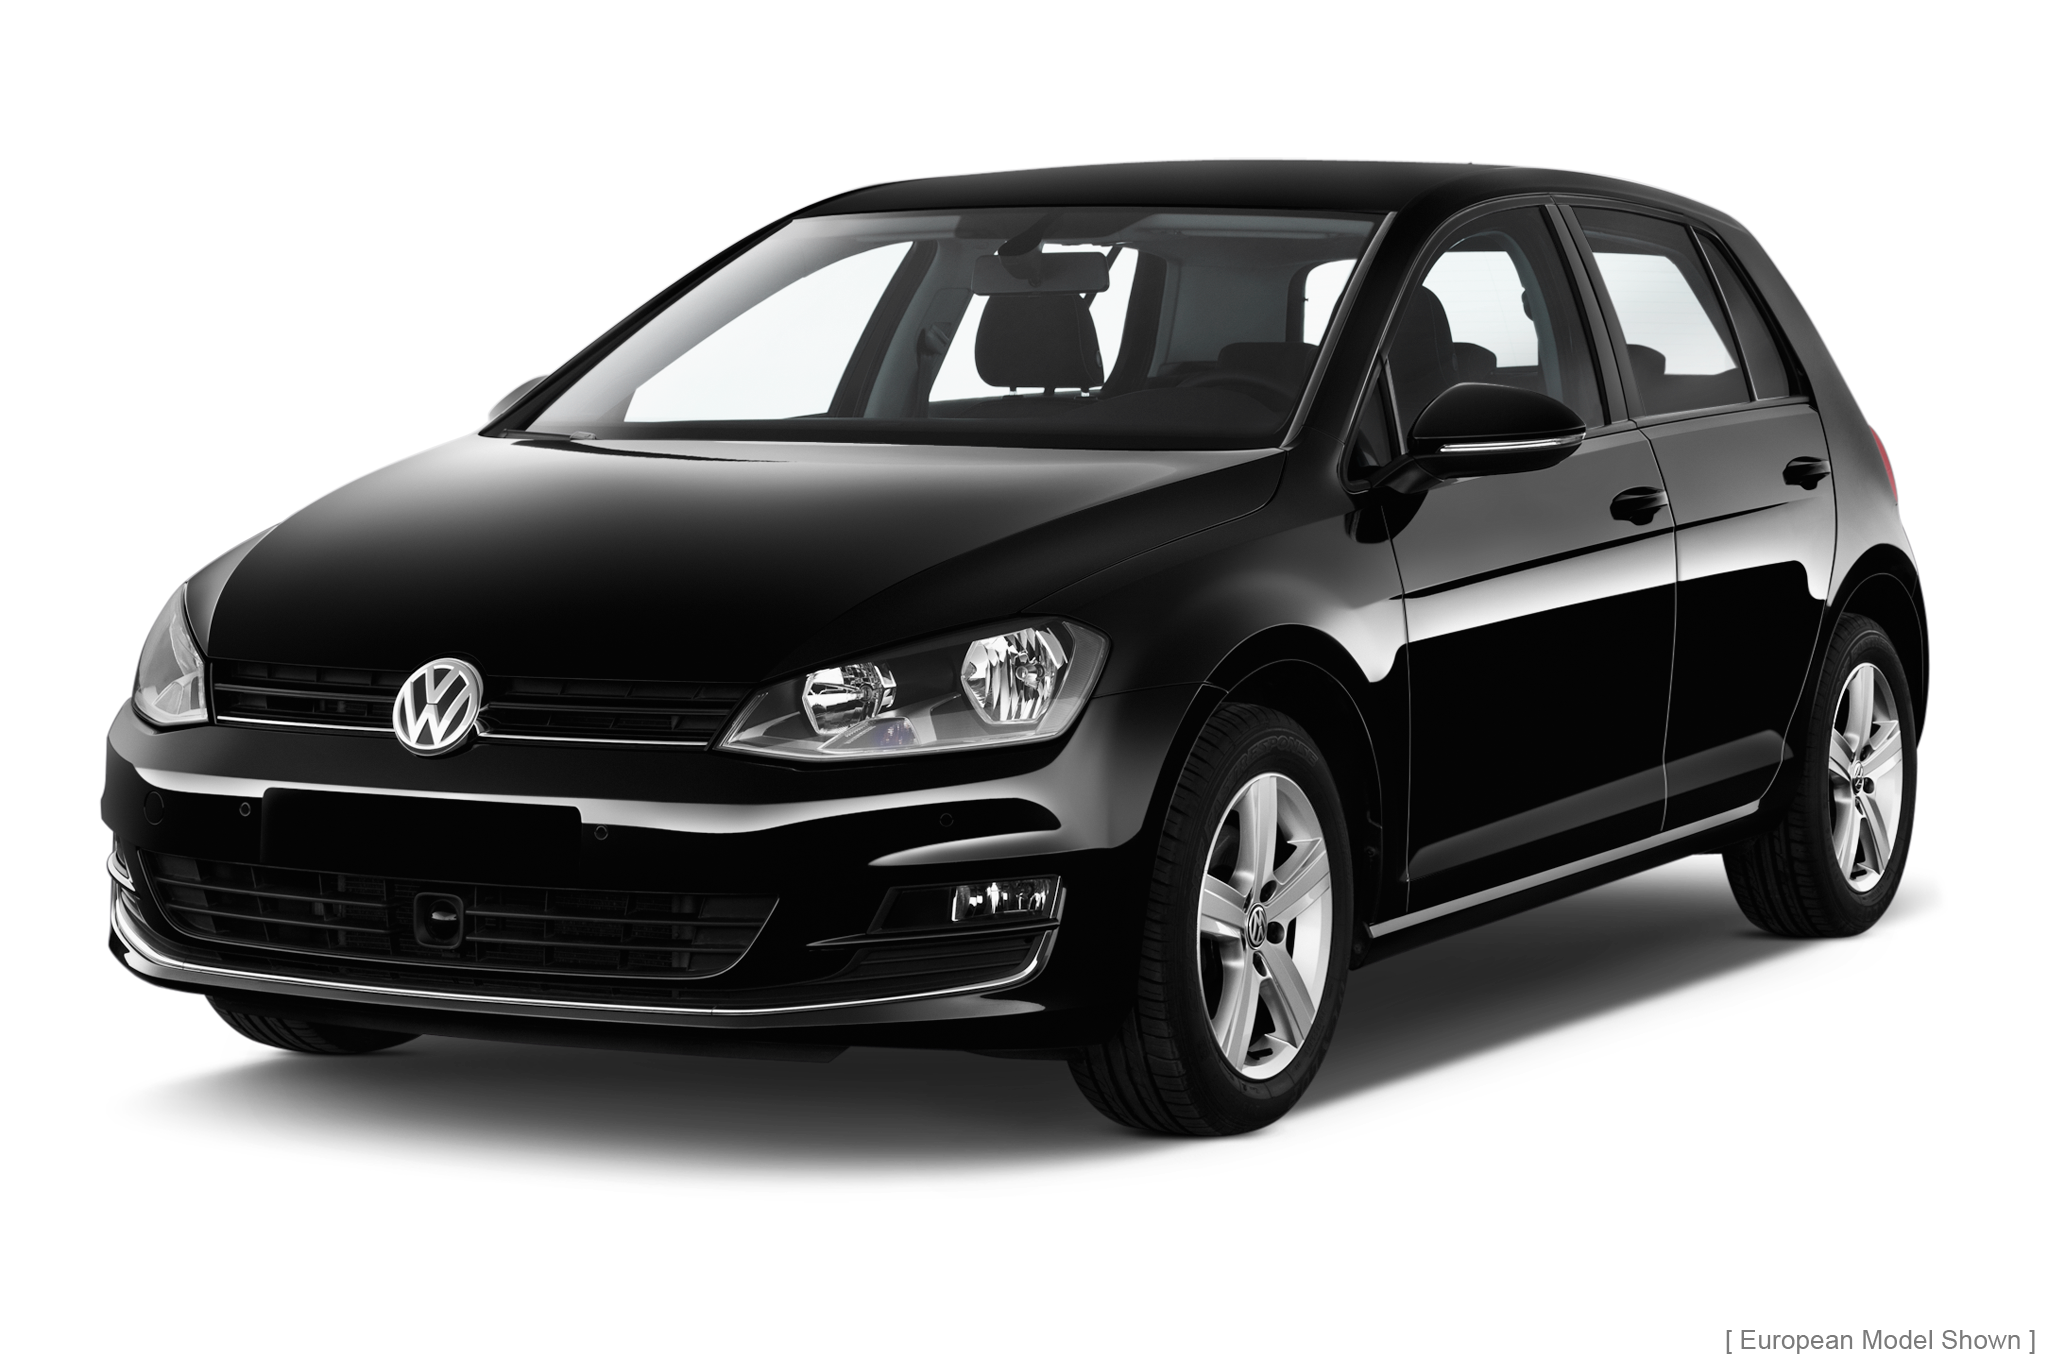 2014 Volkswagen Golf Gtd First Look Automobile Magazine